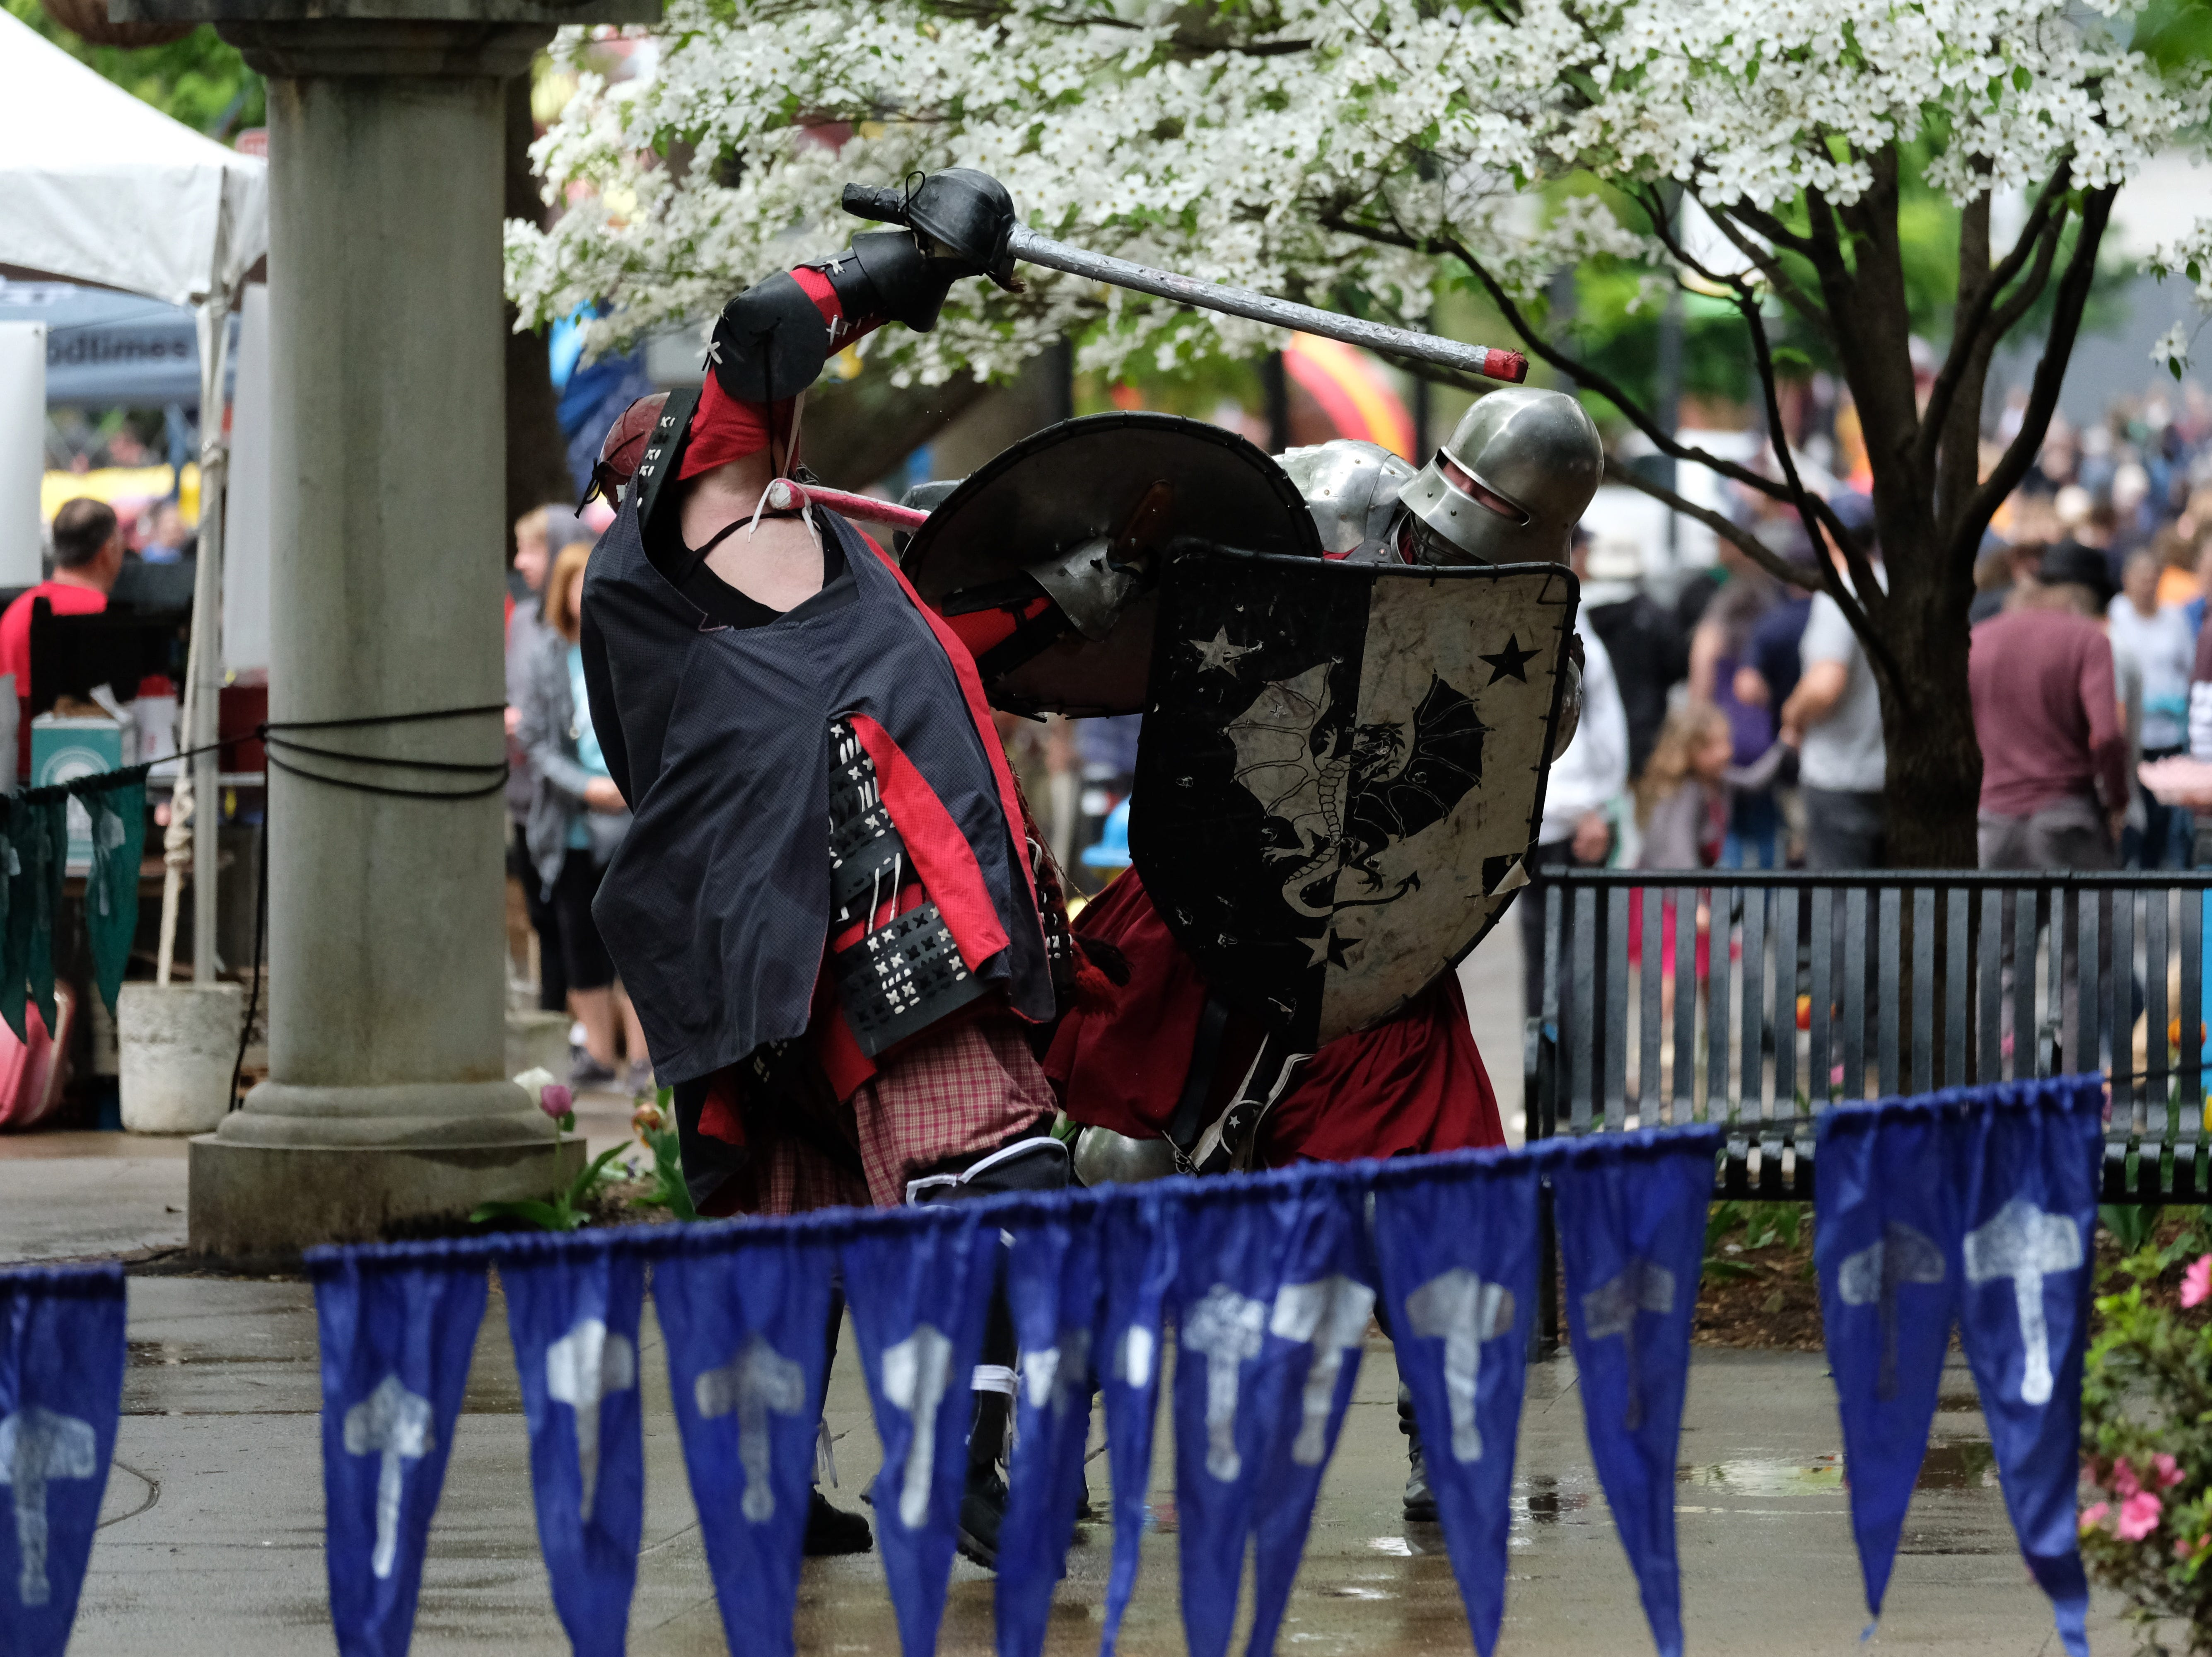 The Society for Creative Anachronism demonstrates sword fighting during the Rossini Festival in Knoxville on Saturday, April 13, 2019. (Shawn Millsaps/Special to News Sentinel)